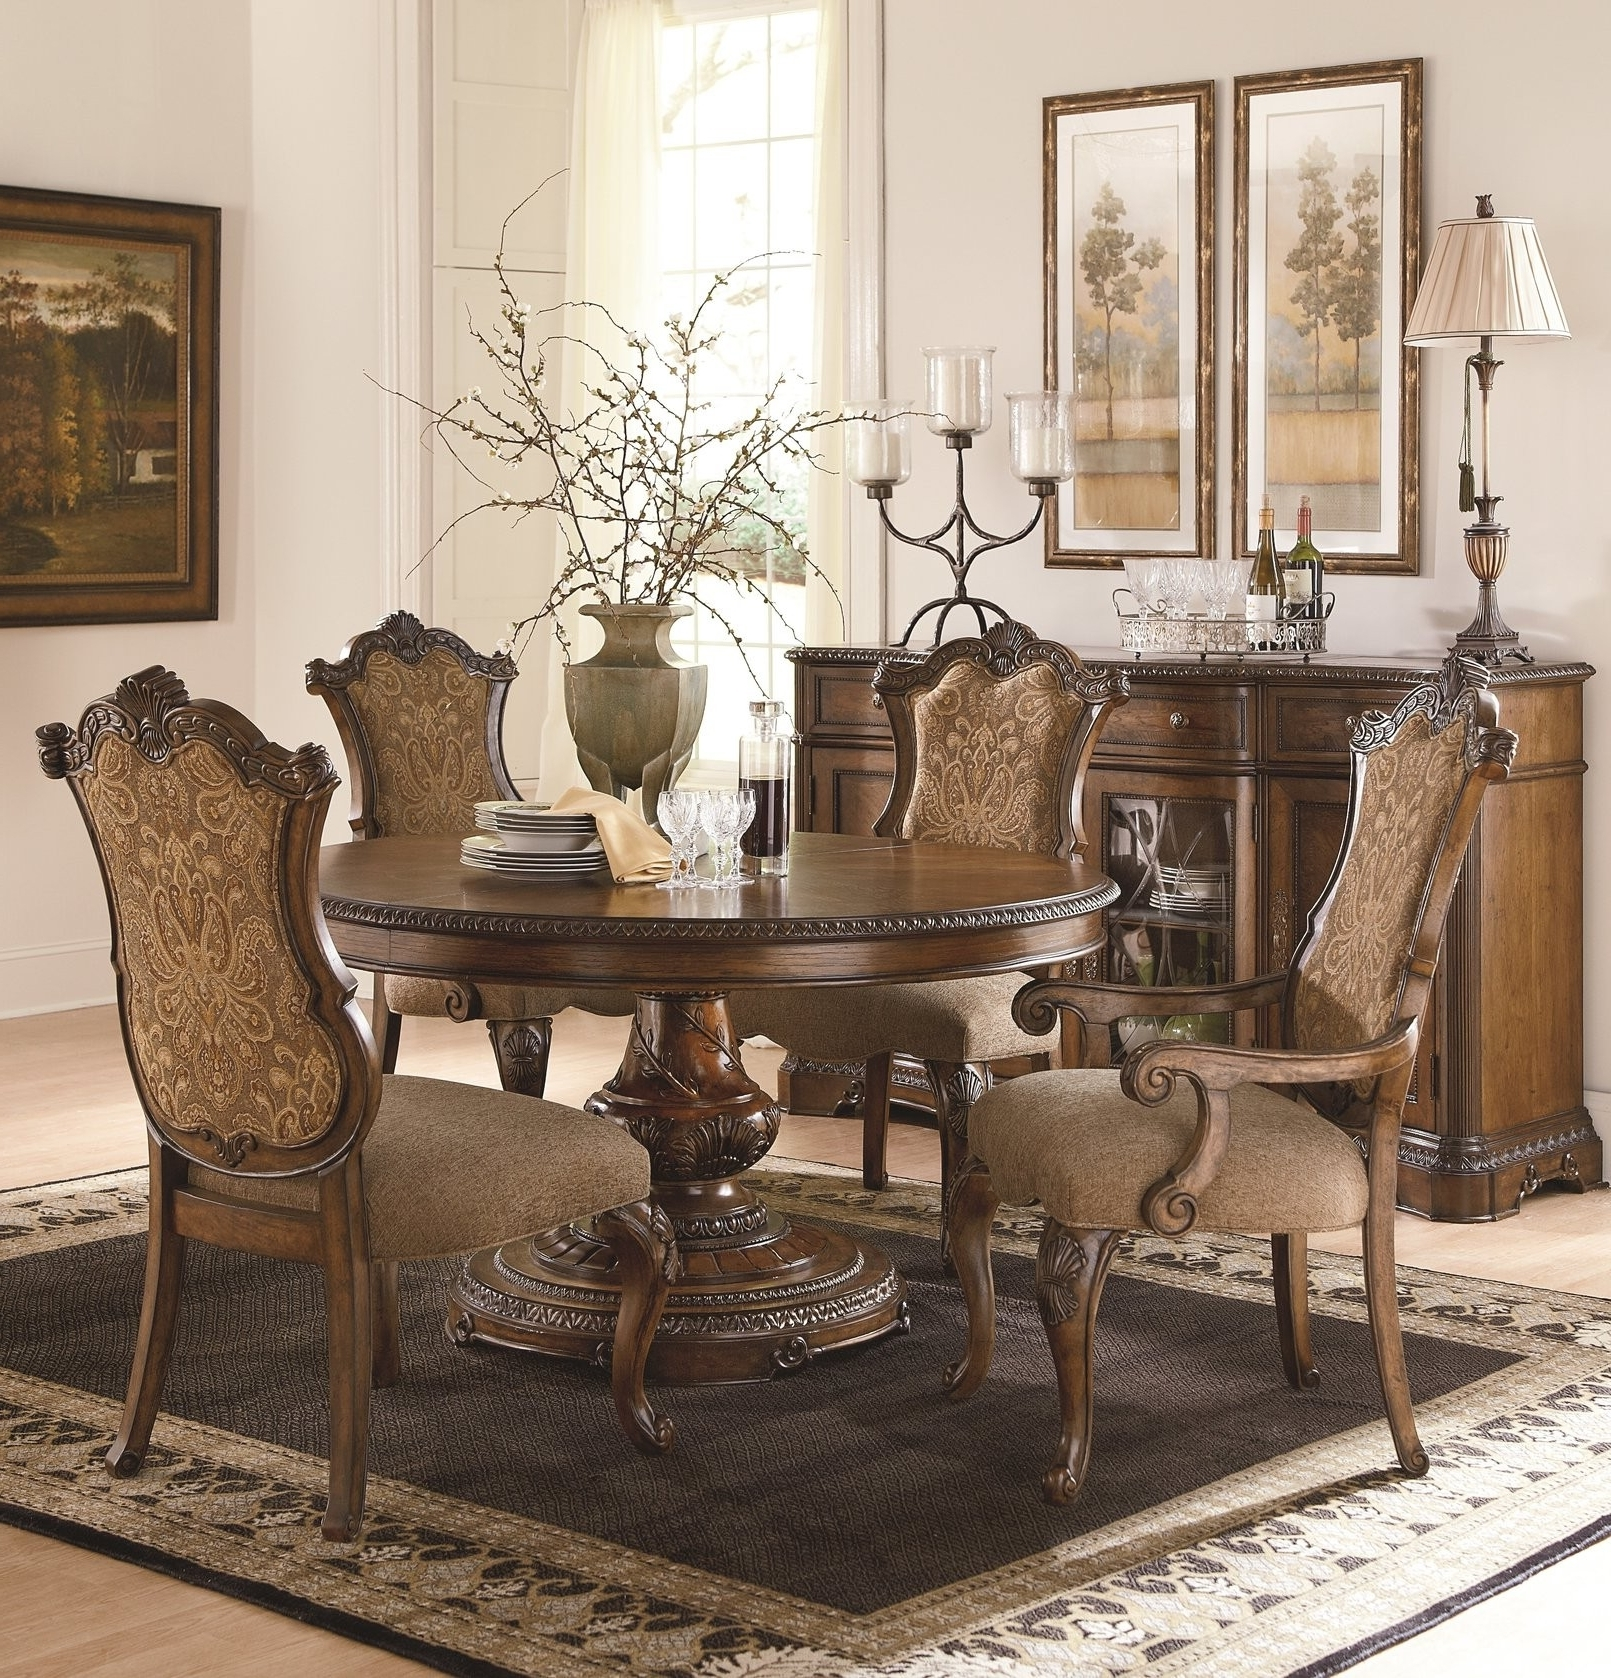 Preferred Dining Table Upholstered Chairs Unique The Pemberleigh Round Table With Jaxon Grey 5 Piece Round Extension Dining Sets With Upholstered Chairs (Gallery 9 of 25)